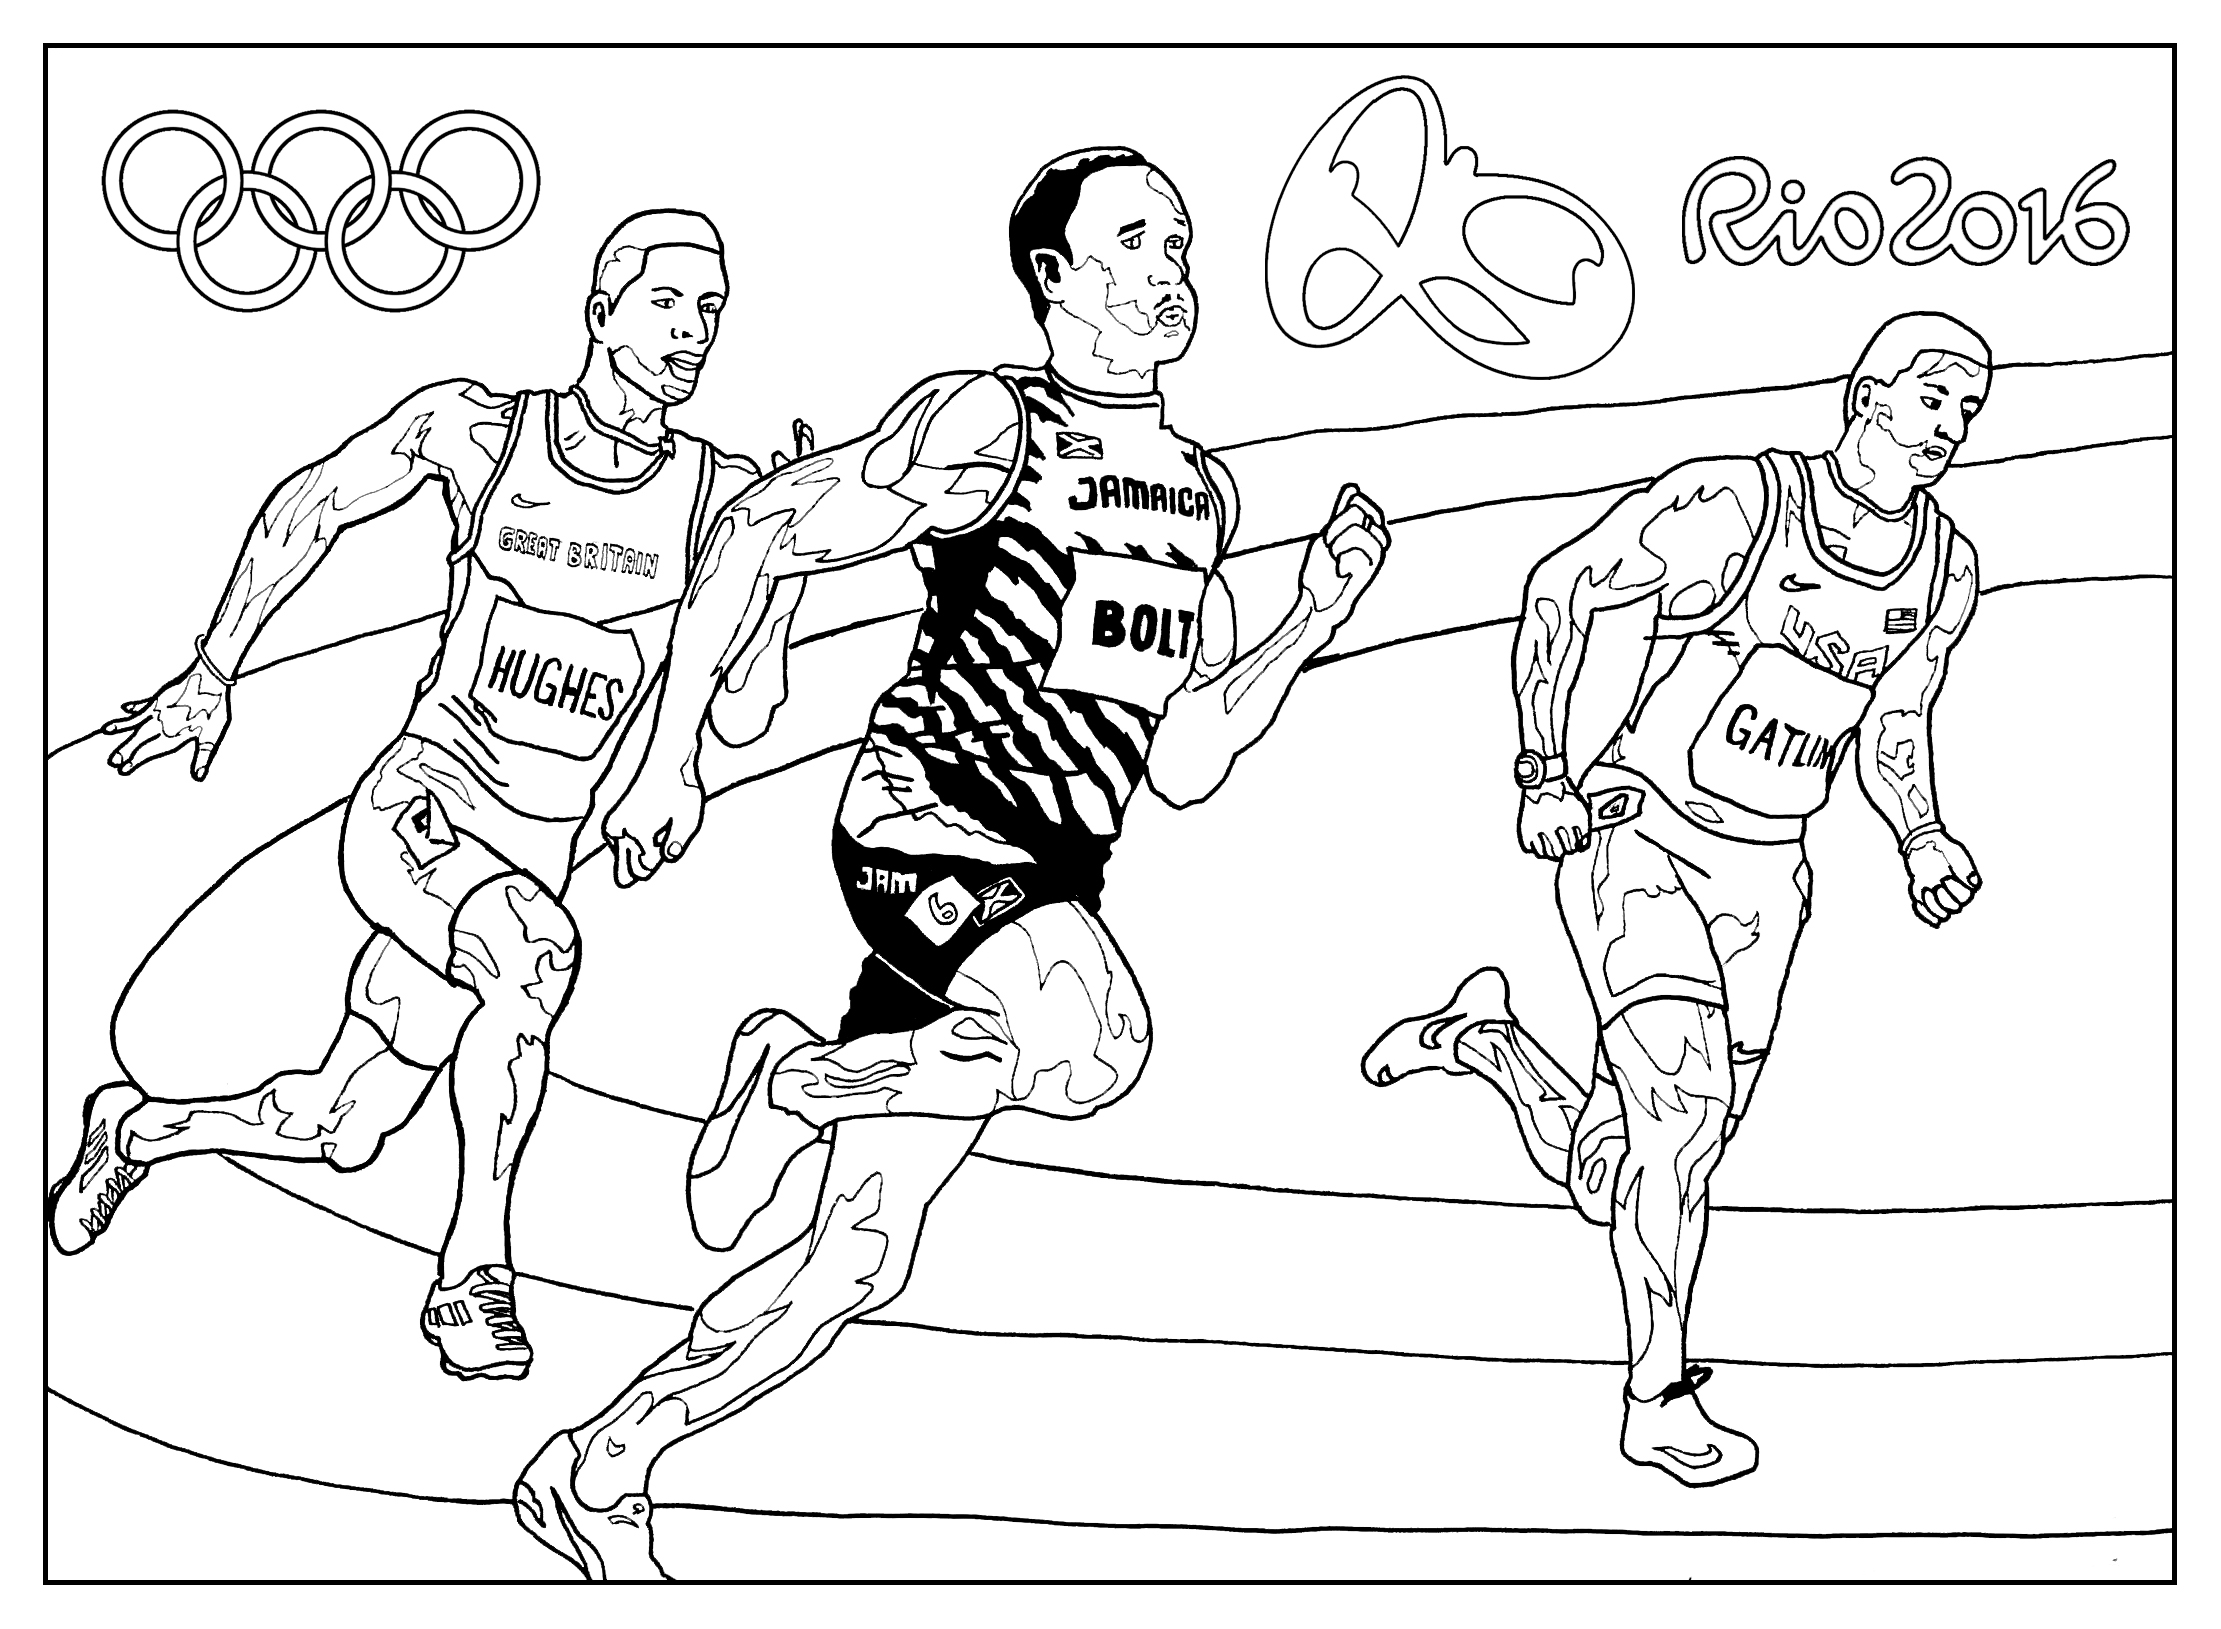 Coloring page for the 2016 Rio Olympic games : Athletics